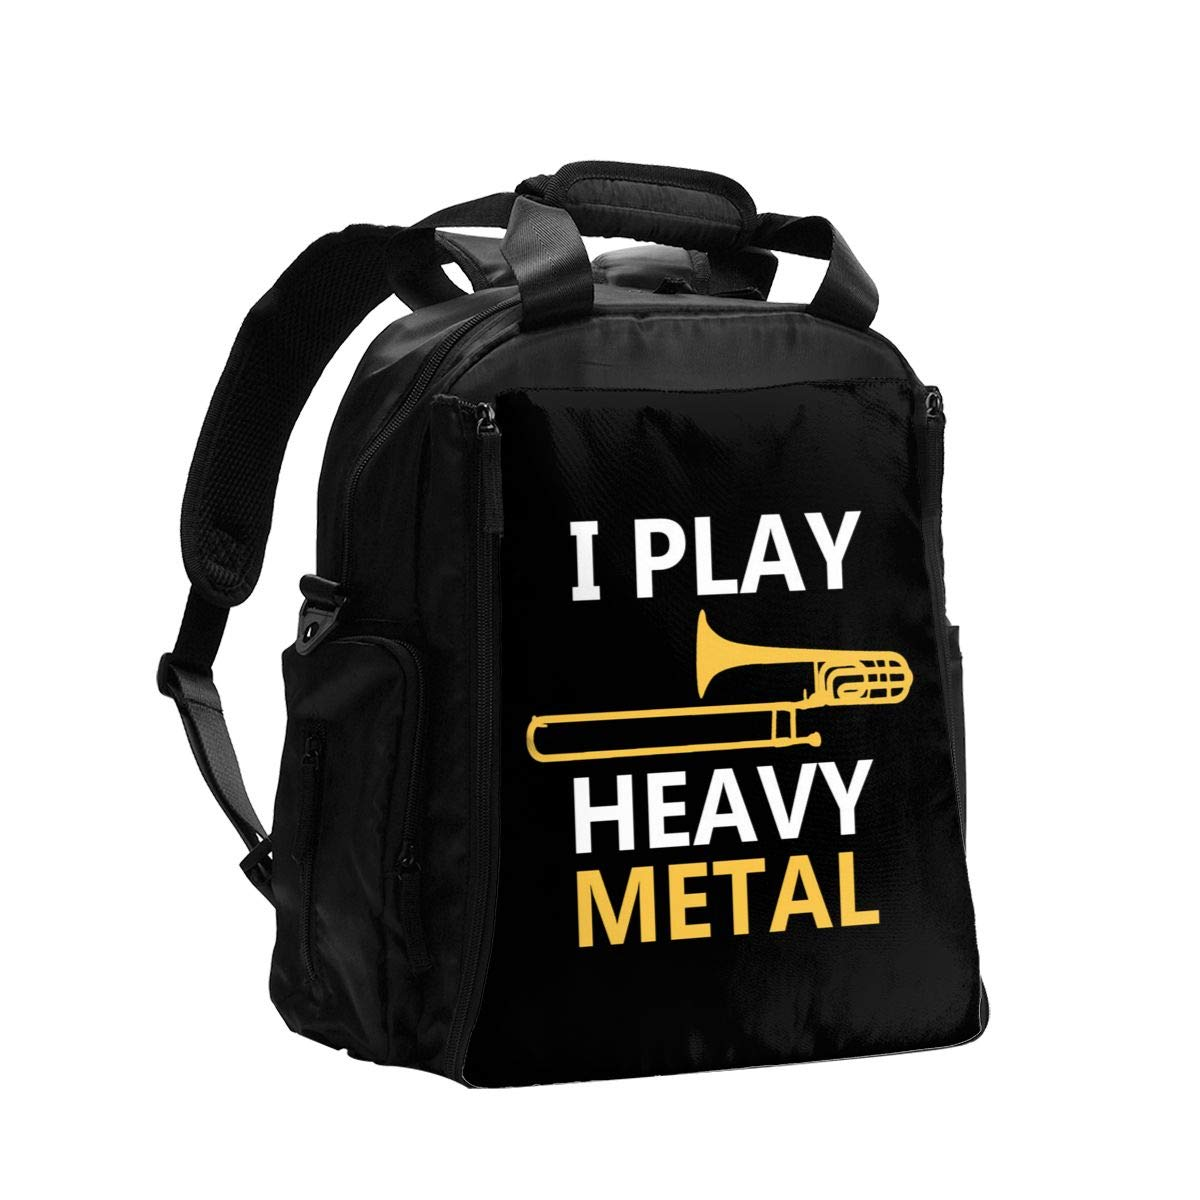 I Play Heavy Metal Diaper Bag Backpack Travel Backpack Maternity Baby Changing Bags